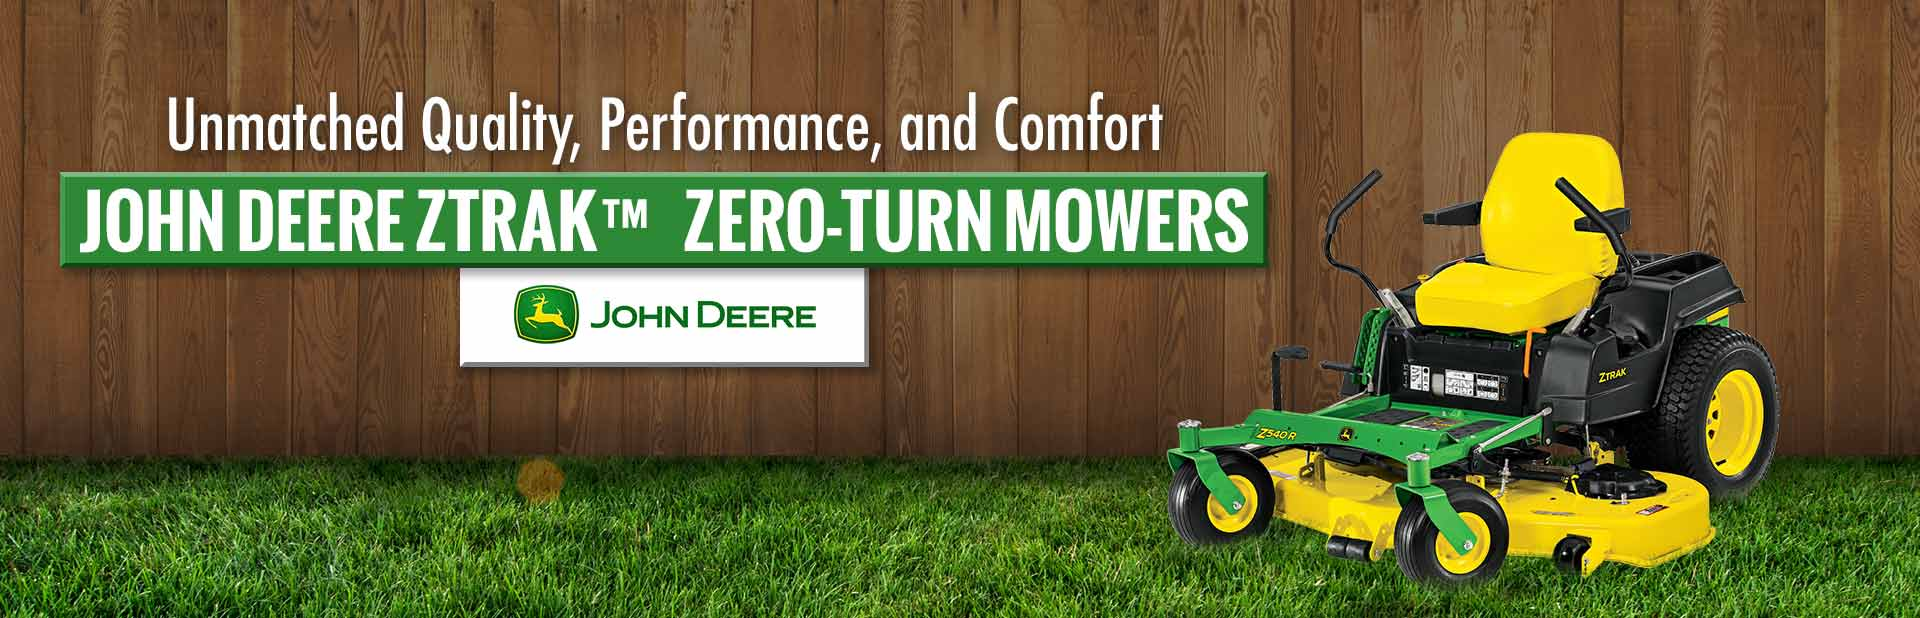 John Deere ZTrak™ Zero-Turn Mowers: Click here to view the models.